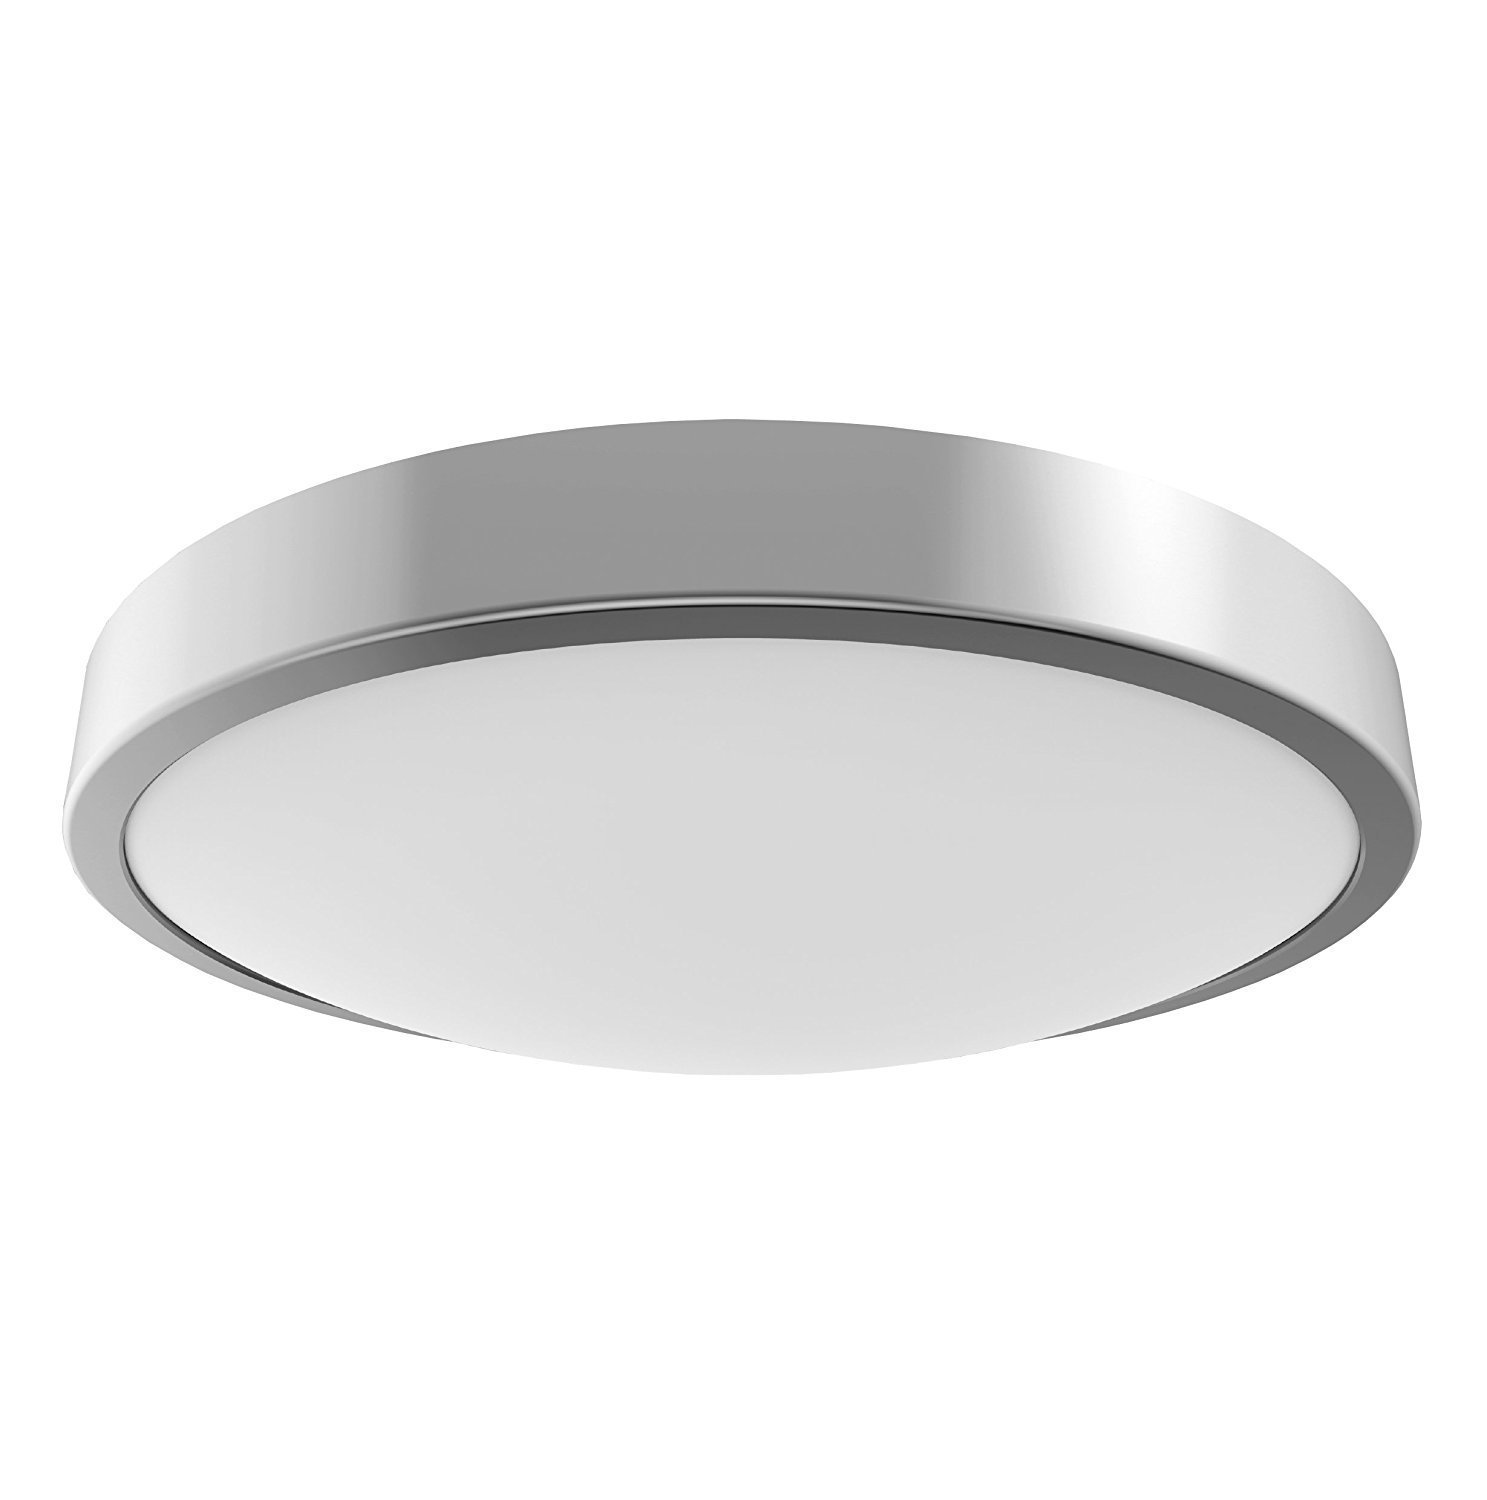 Silver LED Flush Ceiling Light Fitting ~ IP44 Rated ~ Suitable for Bathrooms (Zone 1 2 & 3) PowerSave®